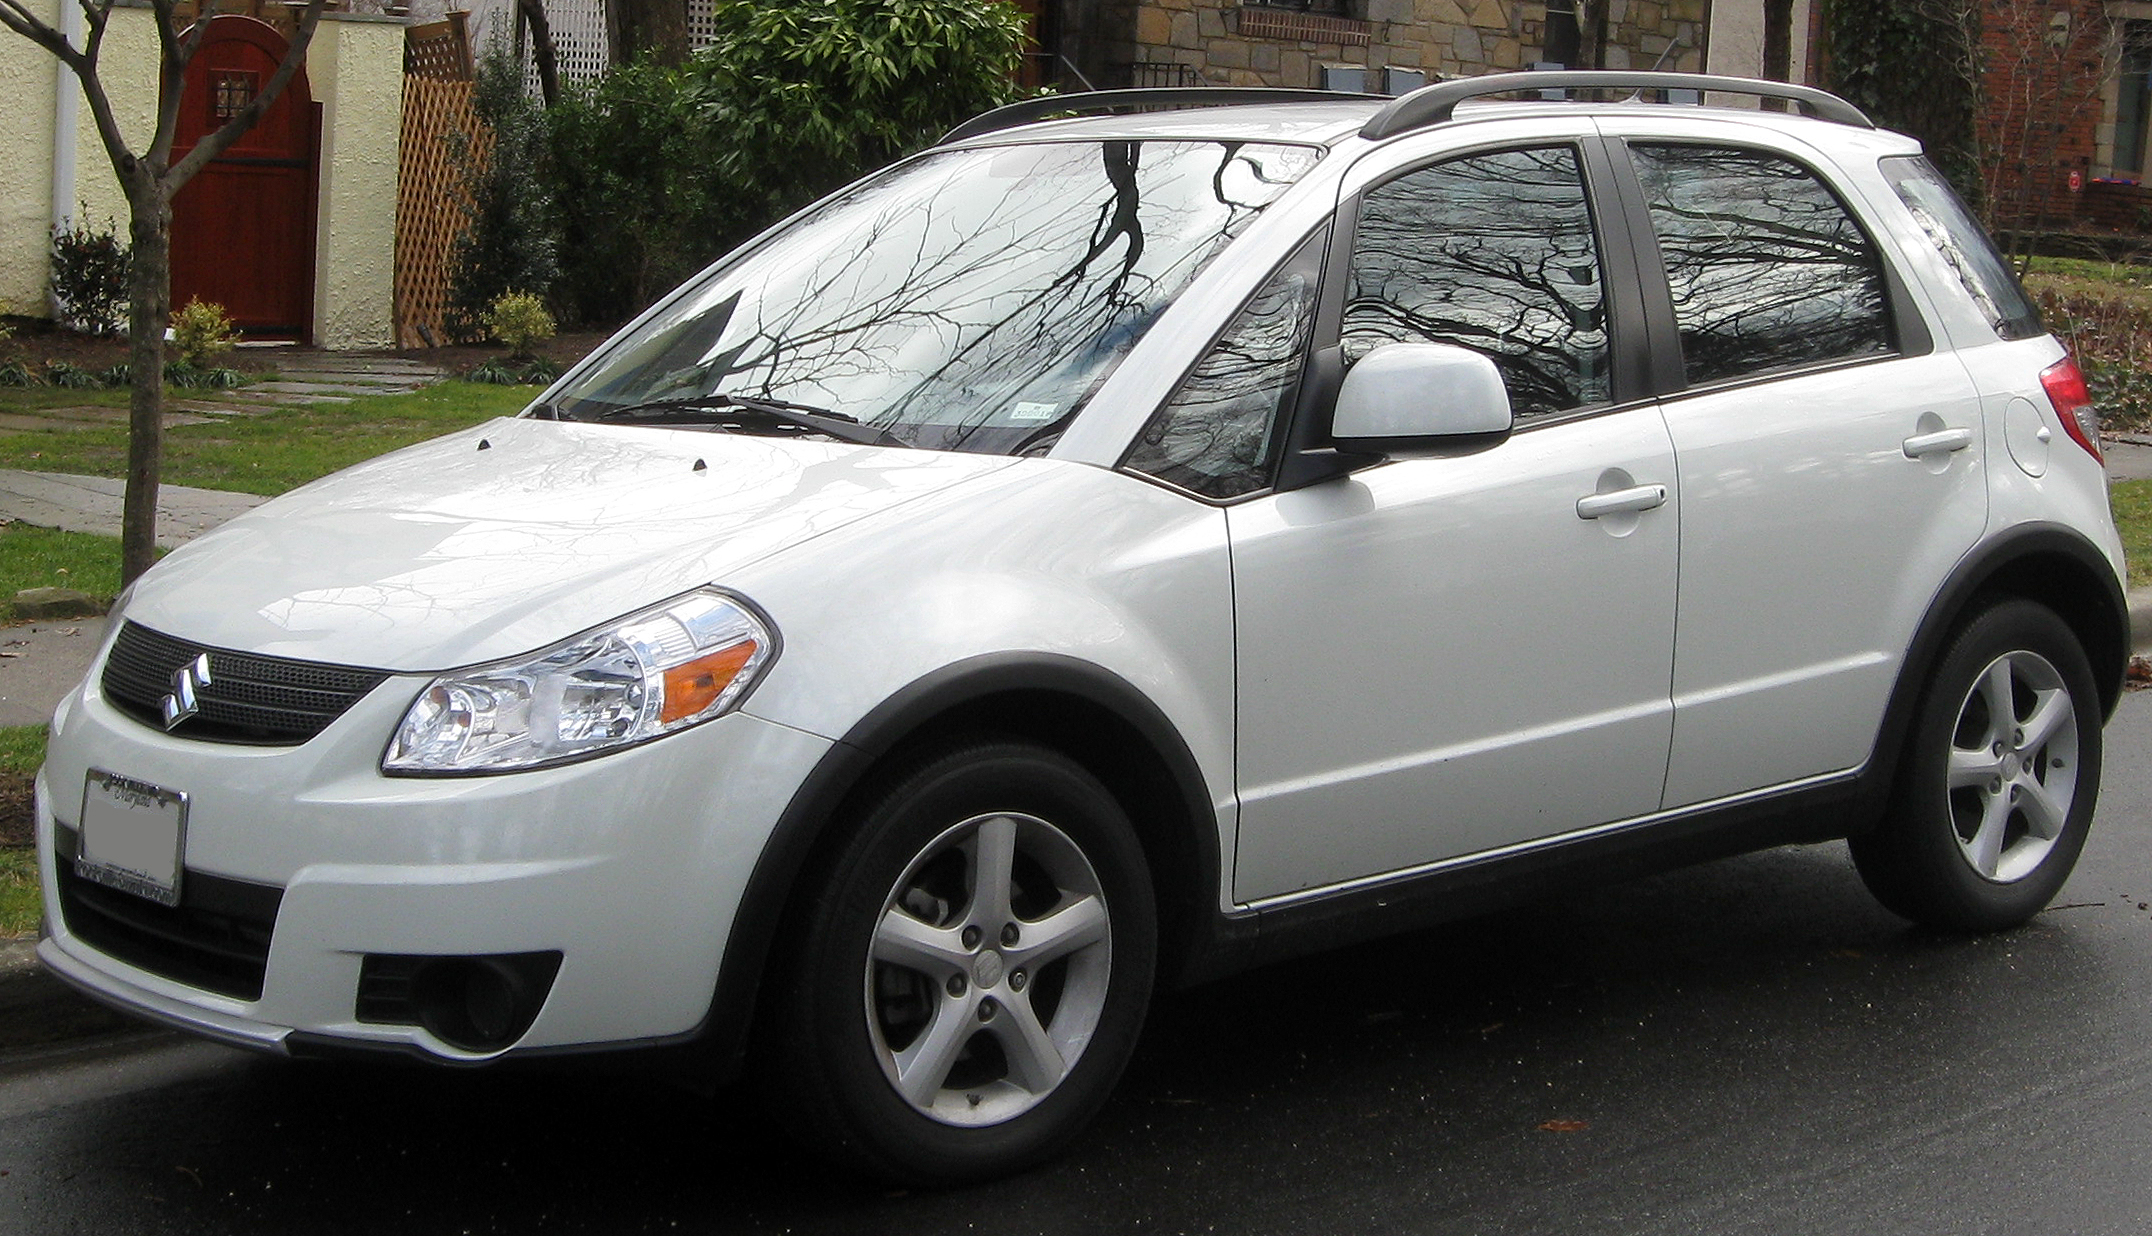 2013 Suzuki Sx4 Service Manual